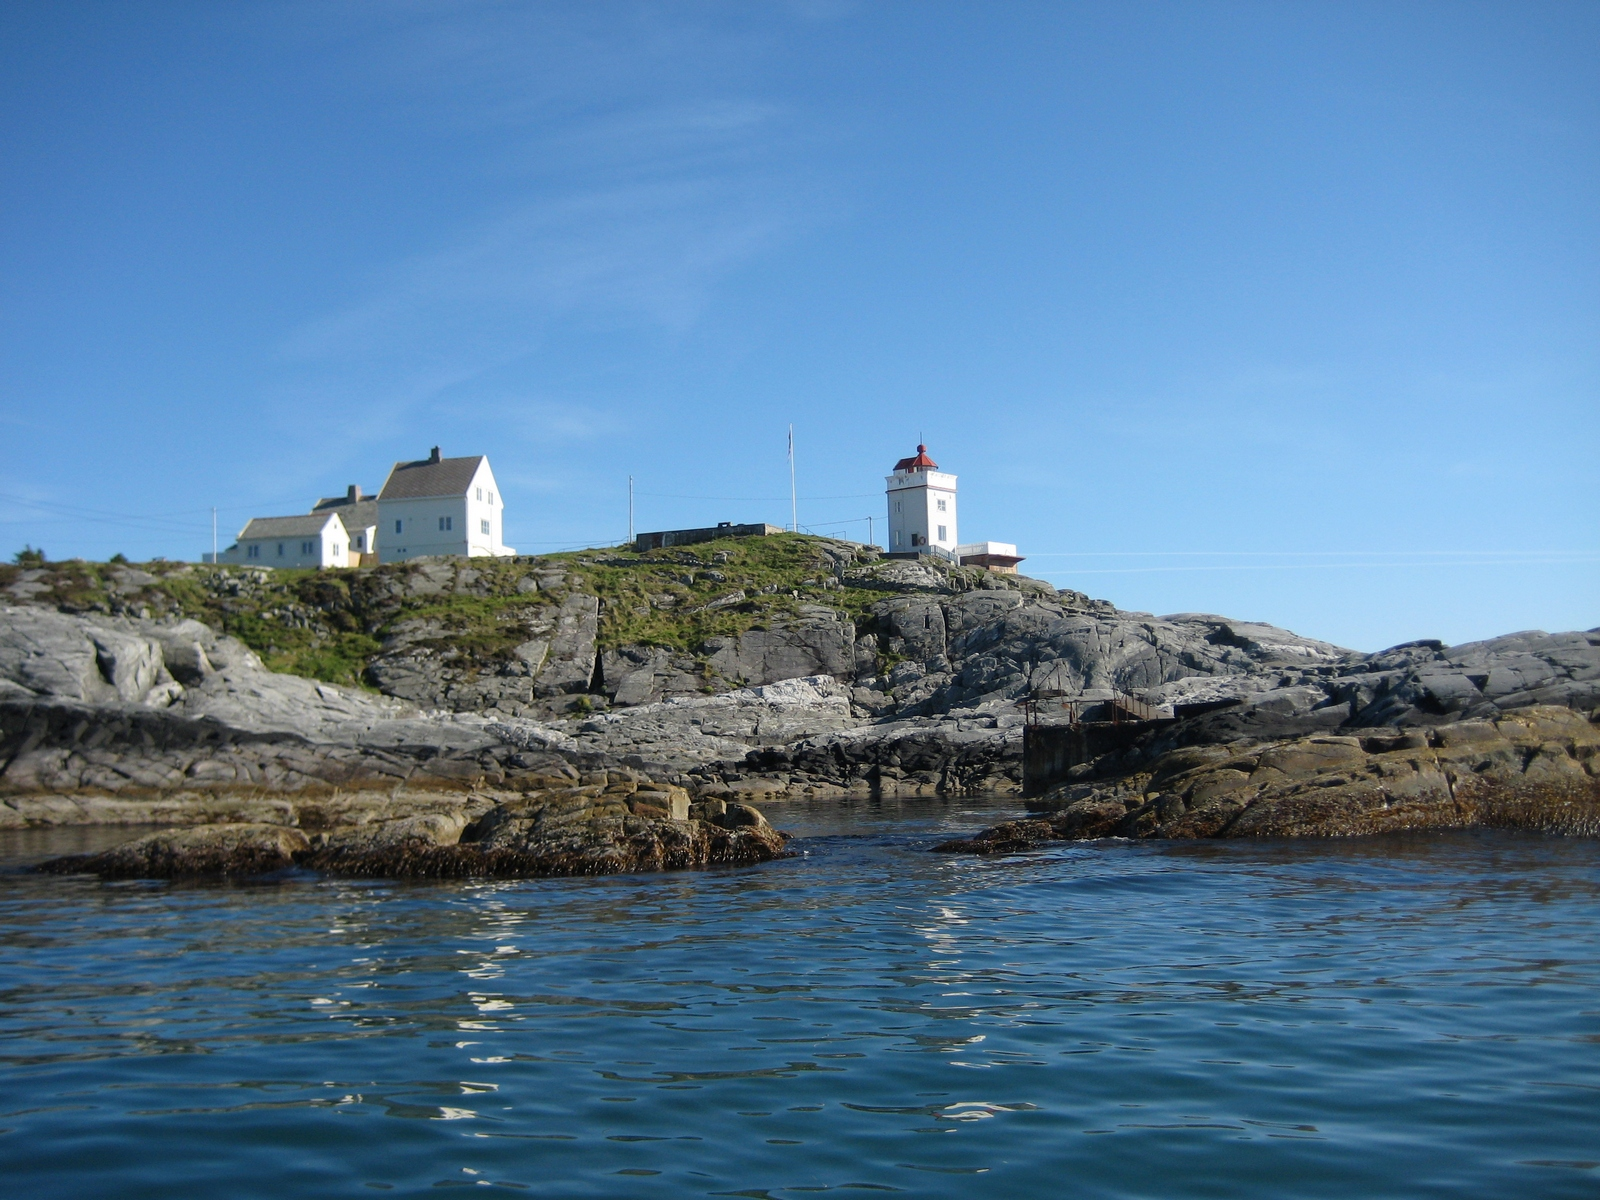 Ryvarden Lighthouse